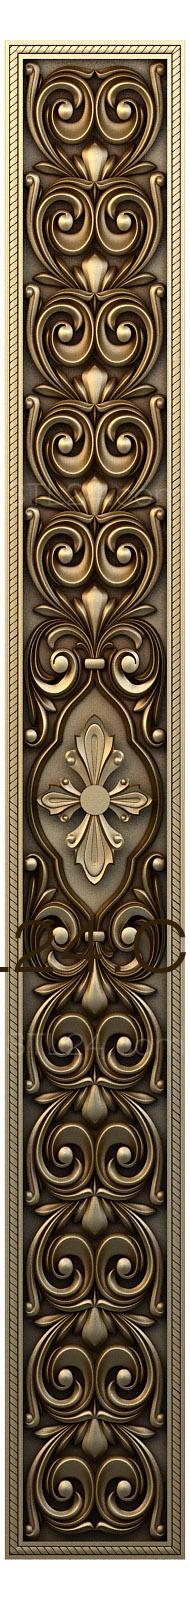 Church panel (PC_0084) - 3D model for CNC